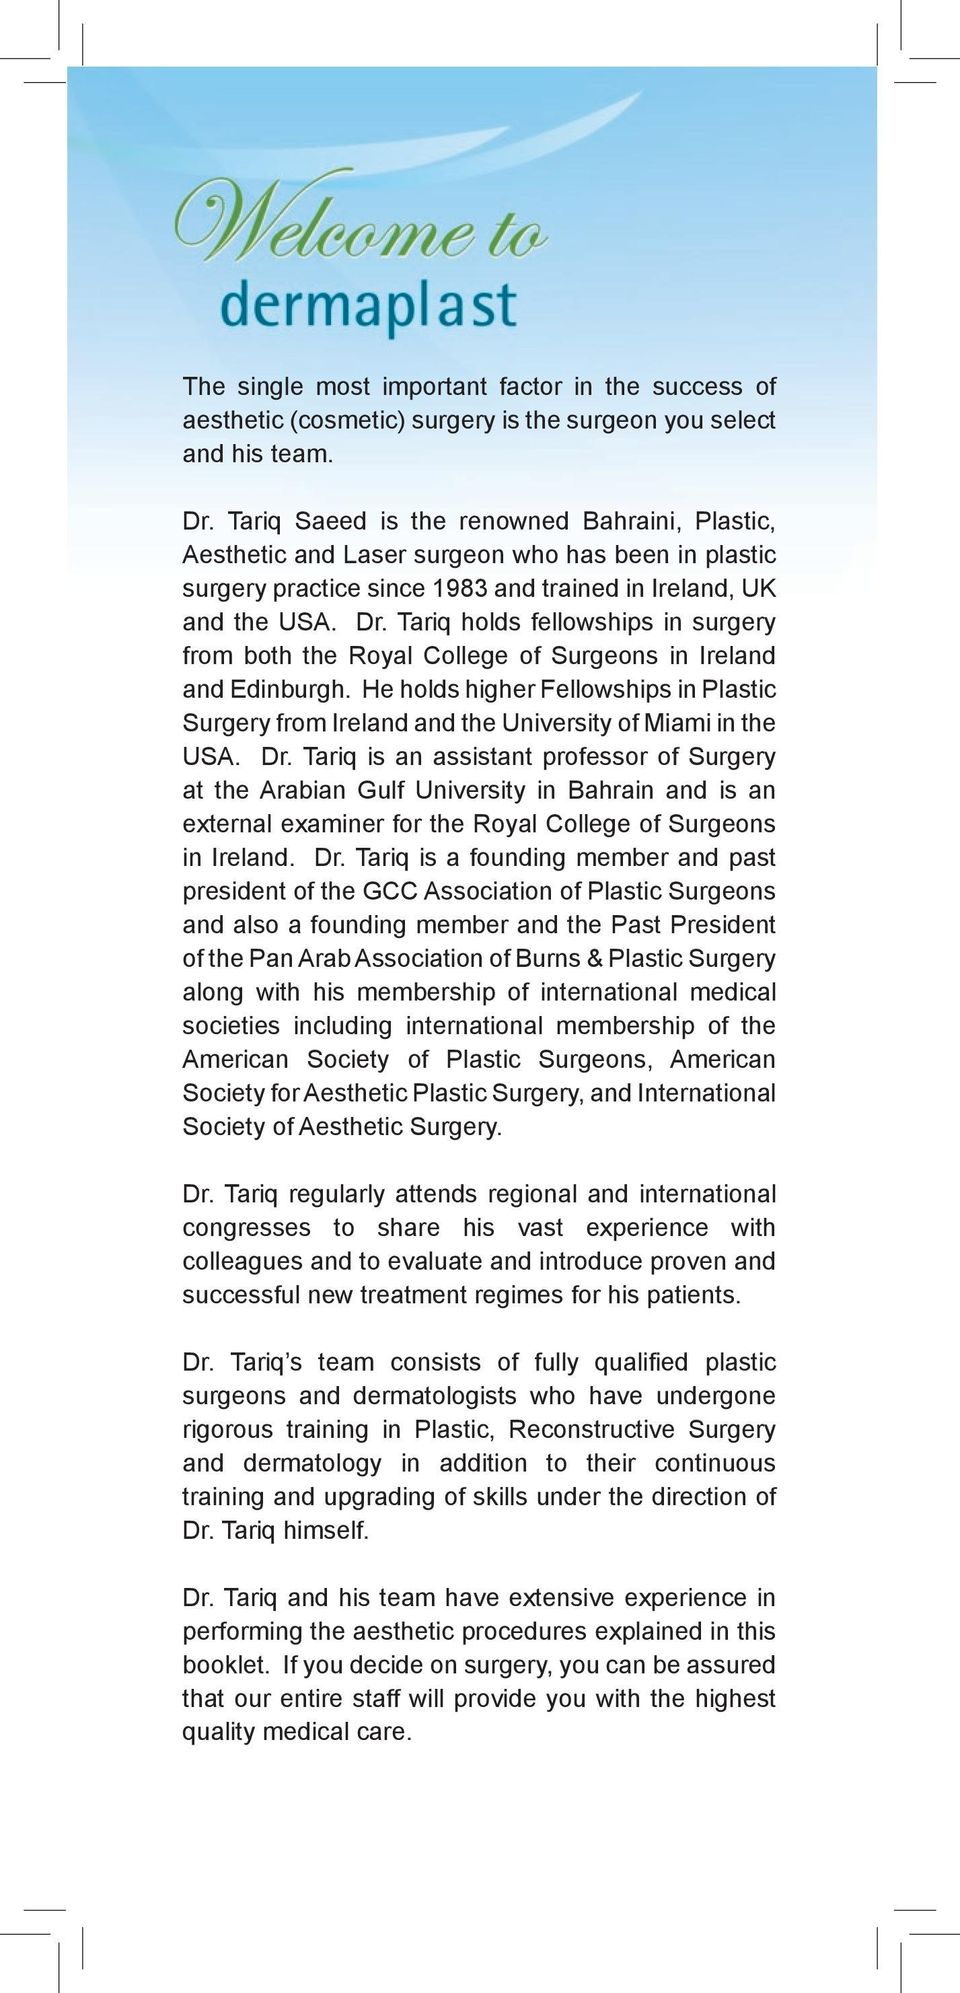 Tariq holds fellowships in surgery from both the Royal College of Surgeons in Ireland and Edinburgh. He holds higher Fellowships in Plastic Surgery from Ireland and the University of Miami in the USA.